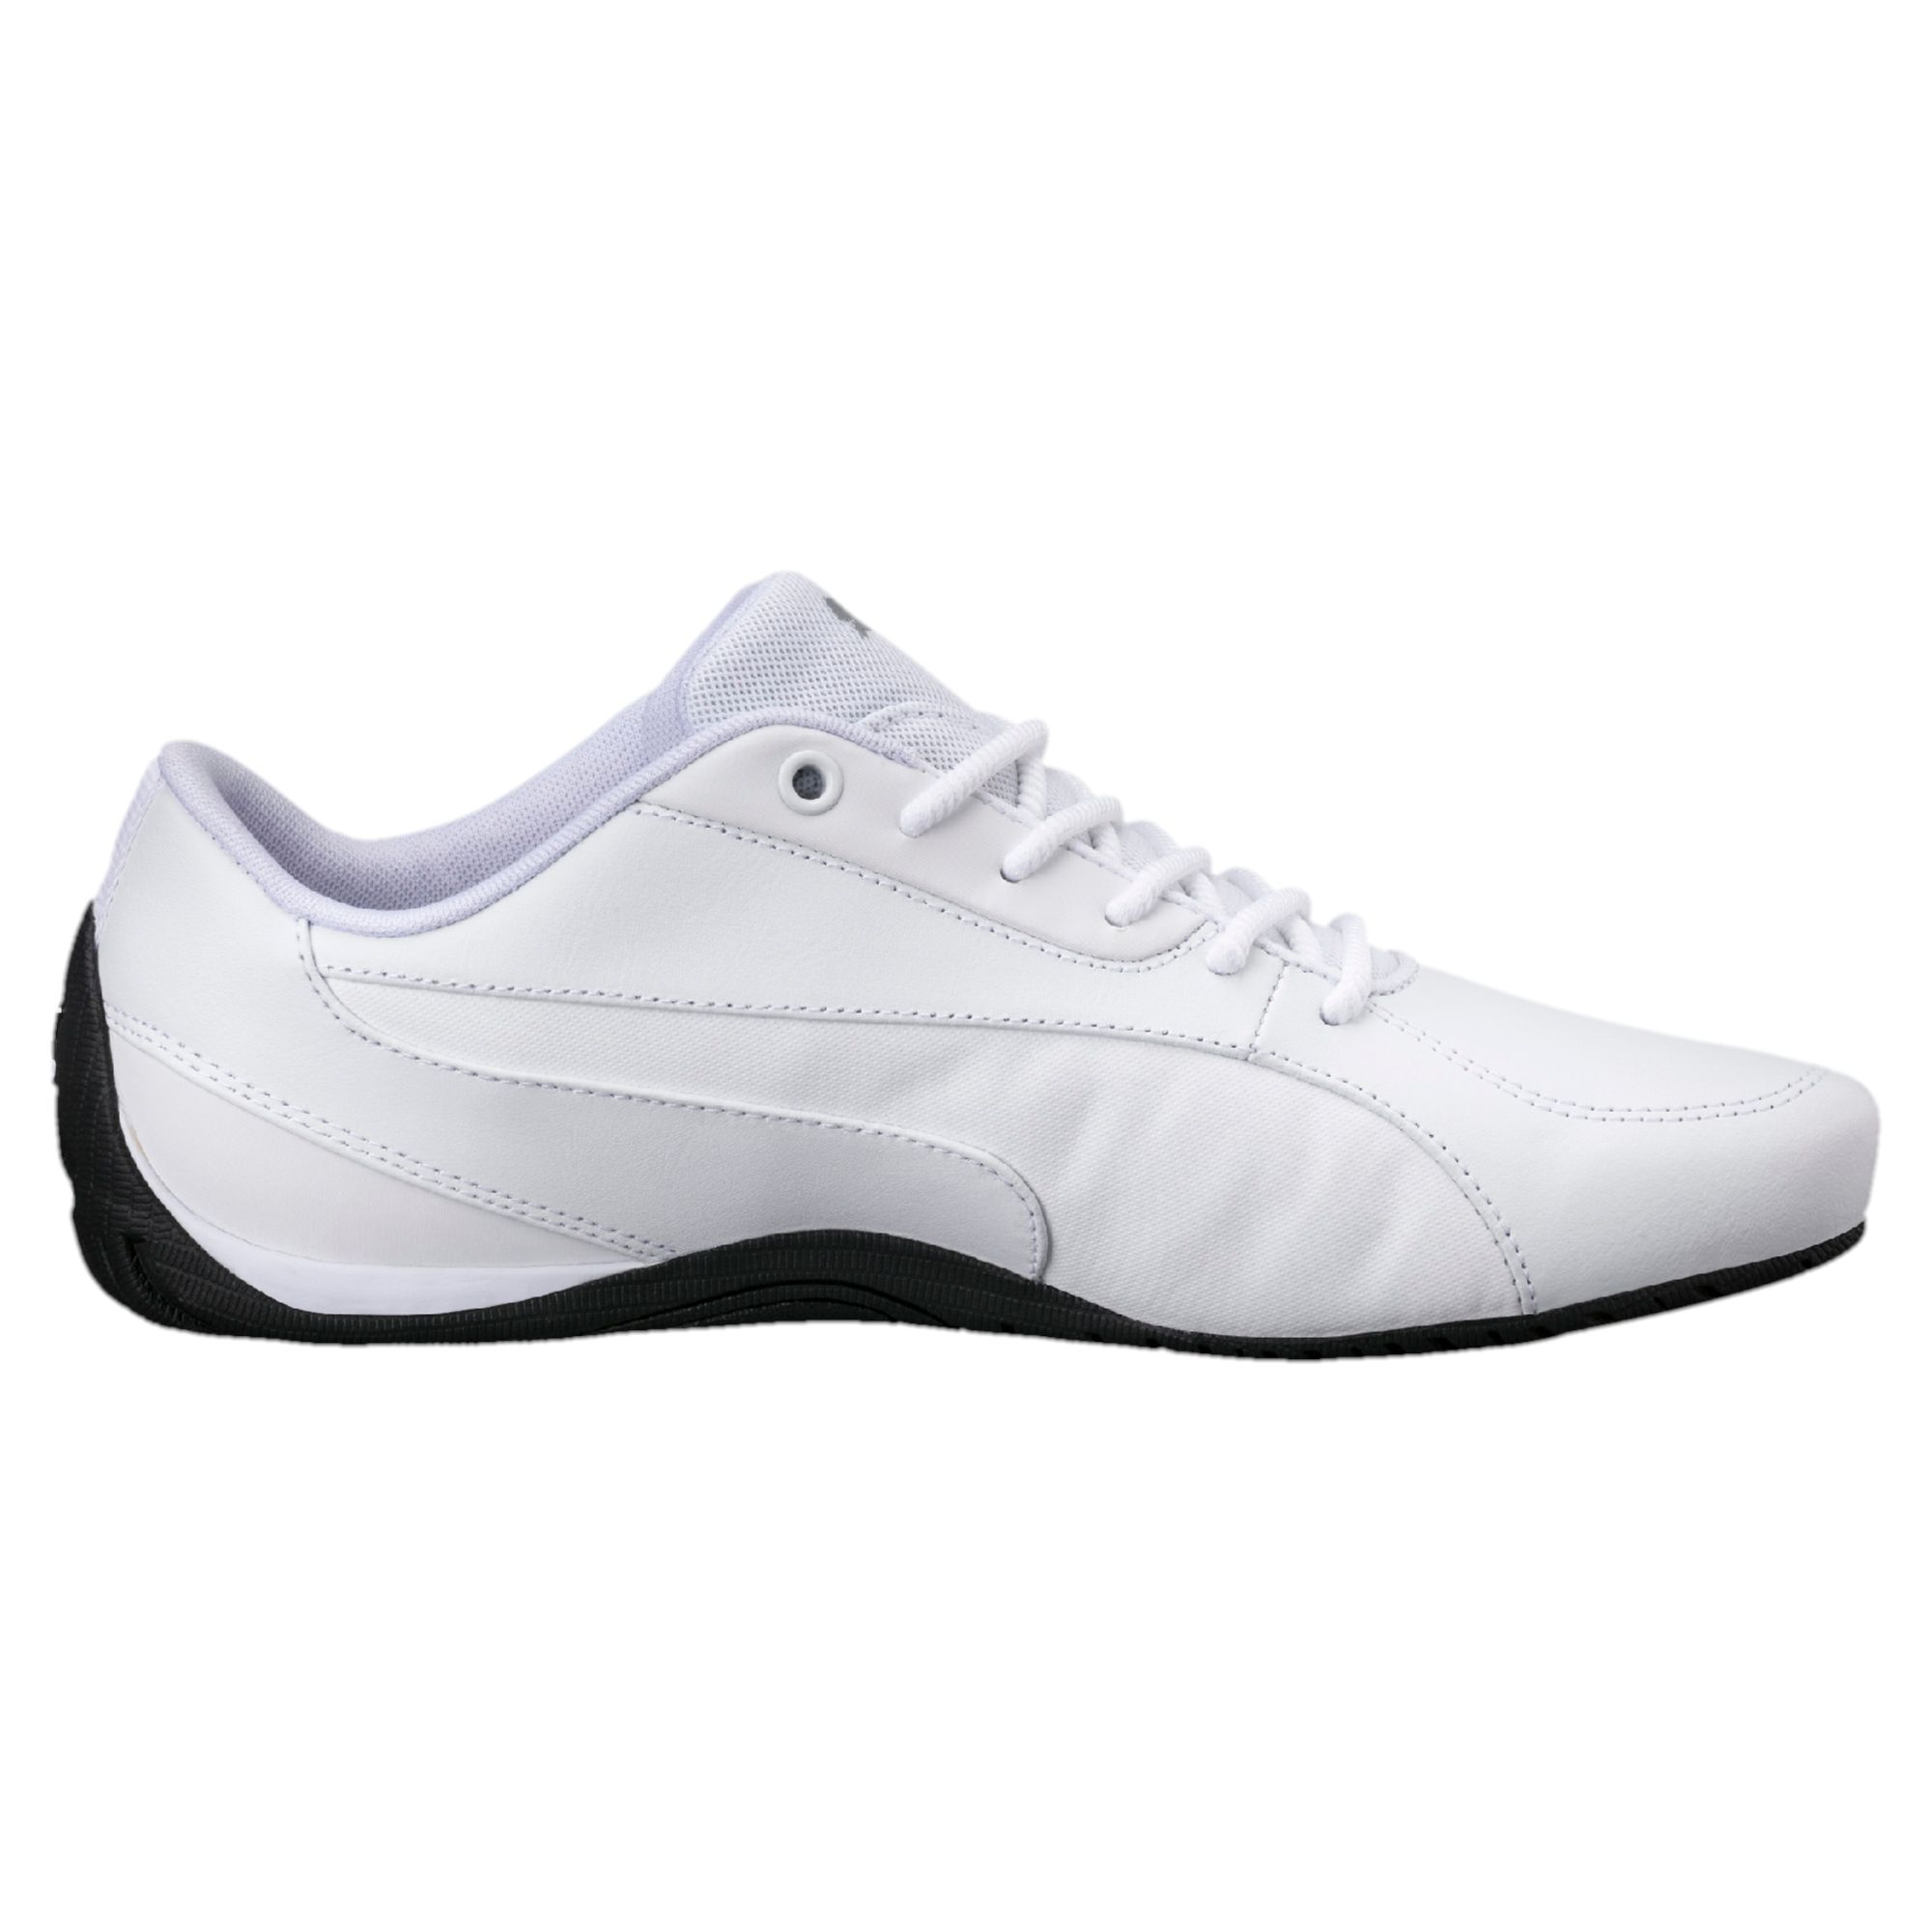 92e558f0a9 Details about PUMA Drift Cat 5 Core Trainers Sport Classics Low Boot Male  New